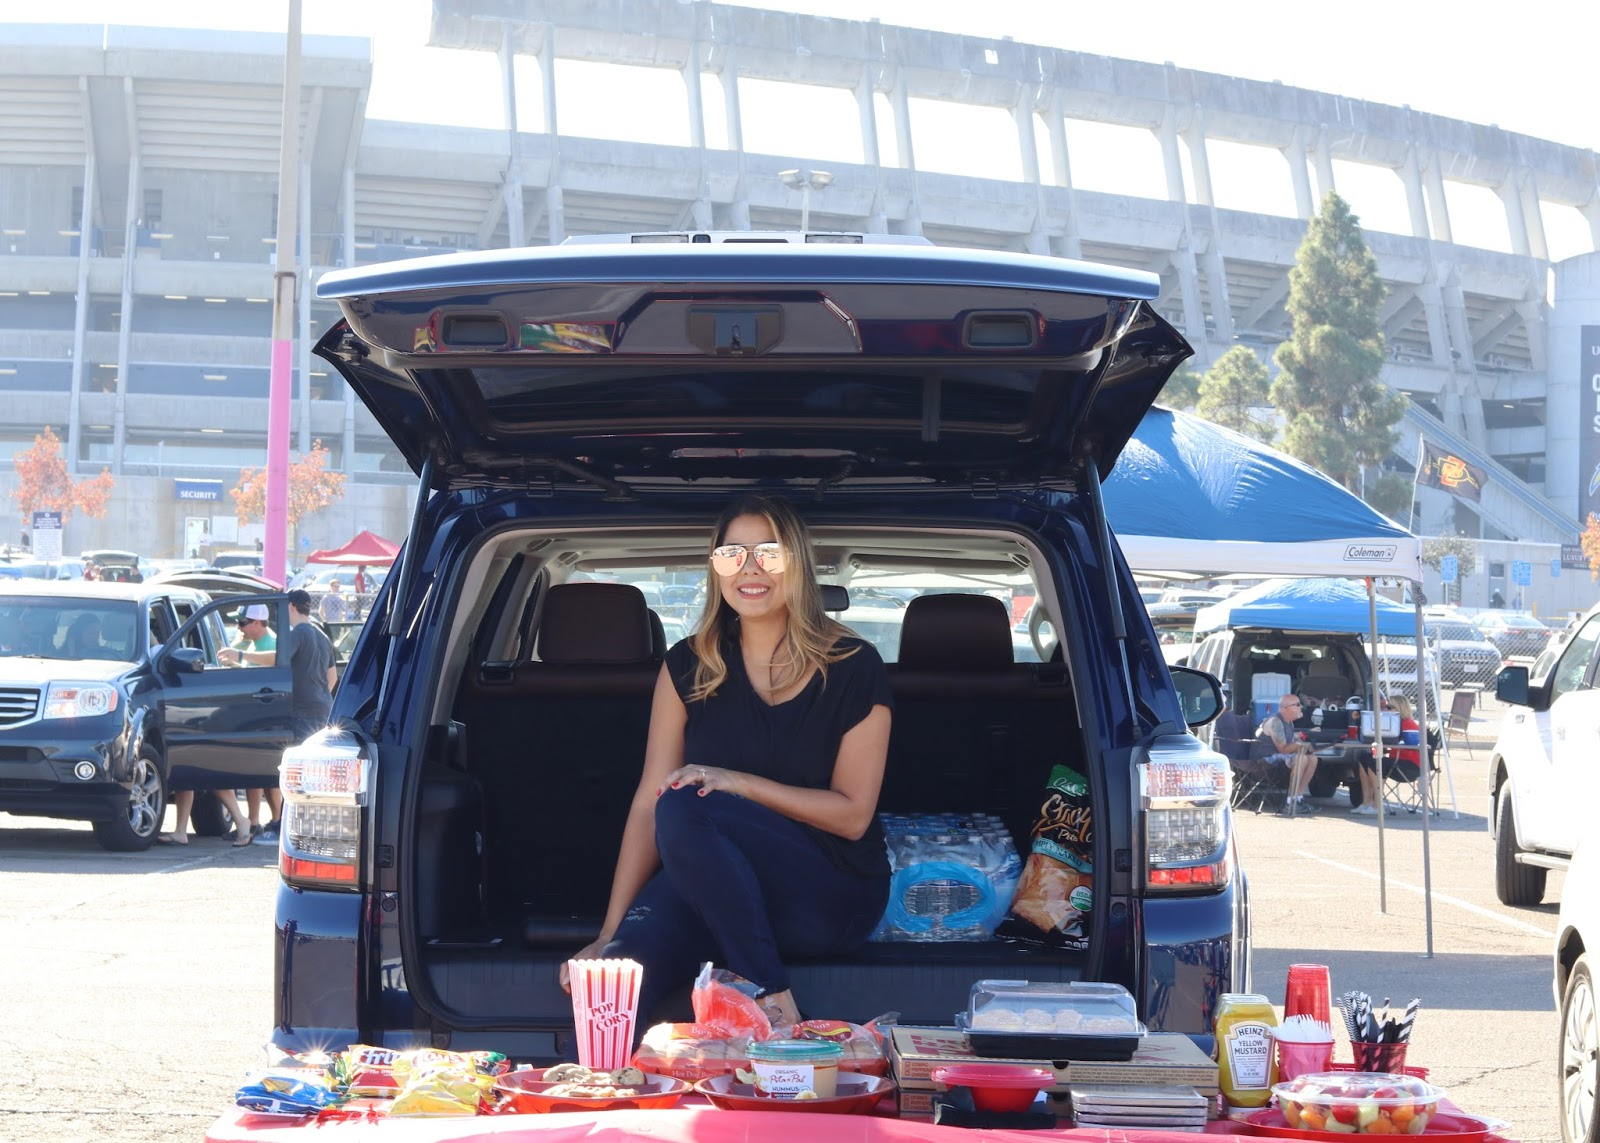 sdsu tailgate party, san diego state tailgate party, ToyotaTailgate, San Diego blogger